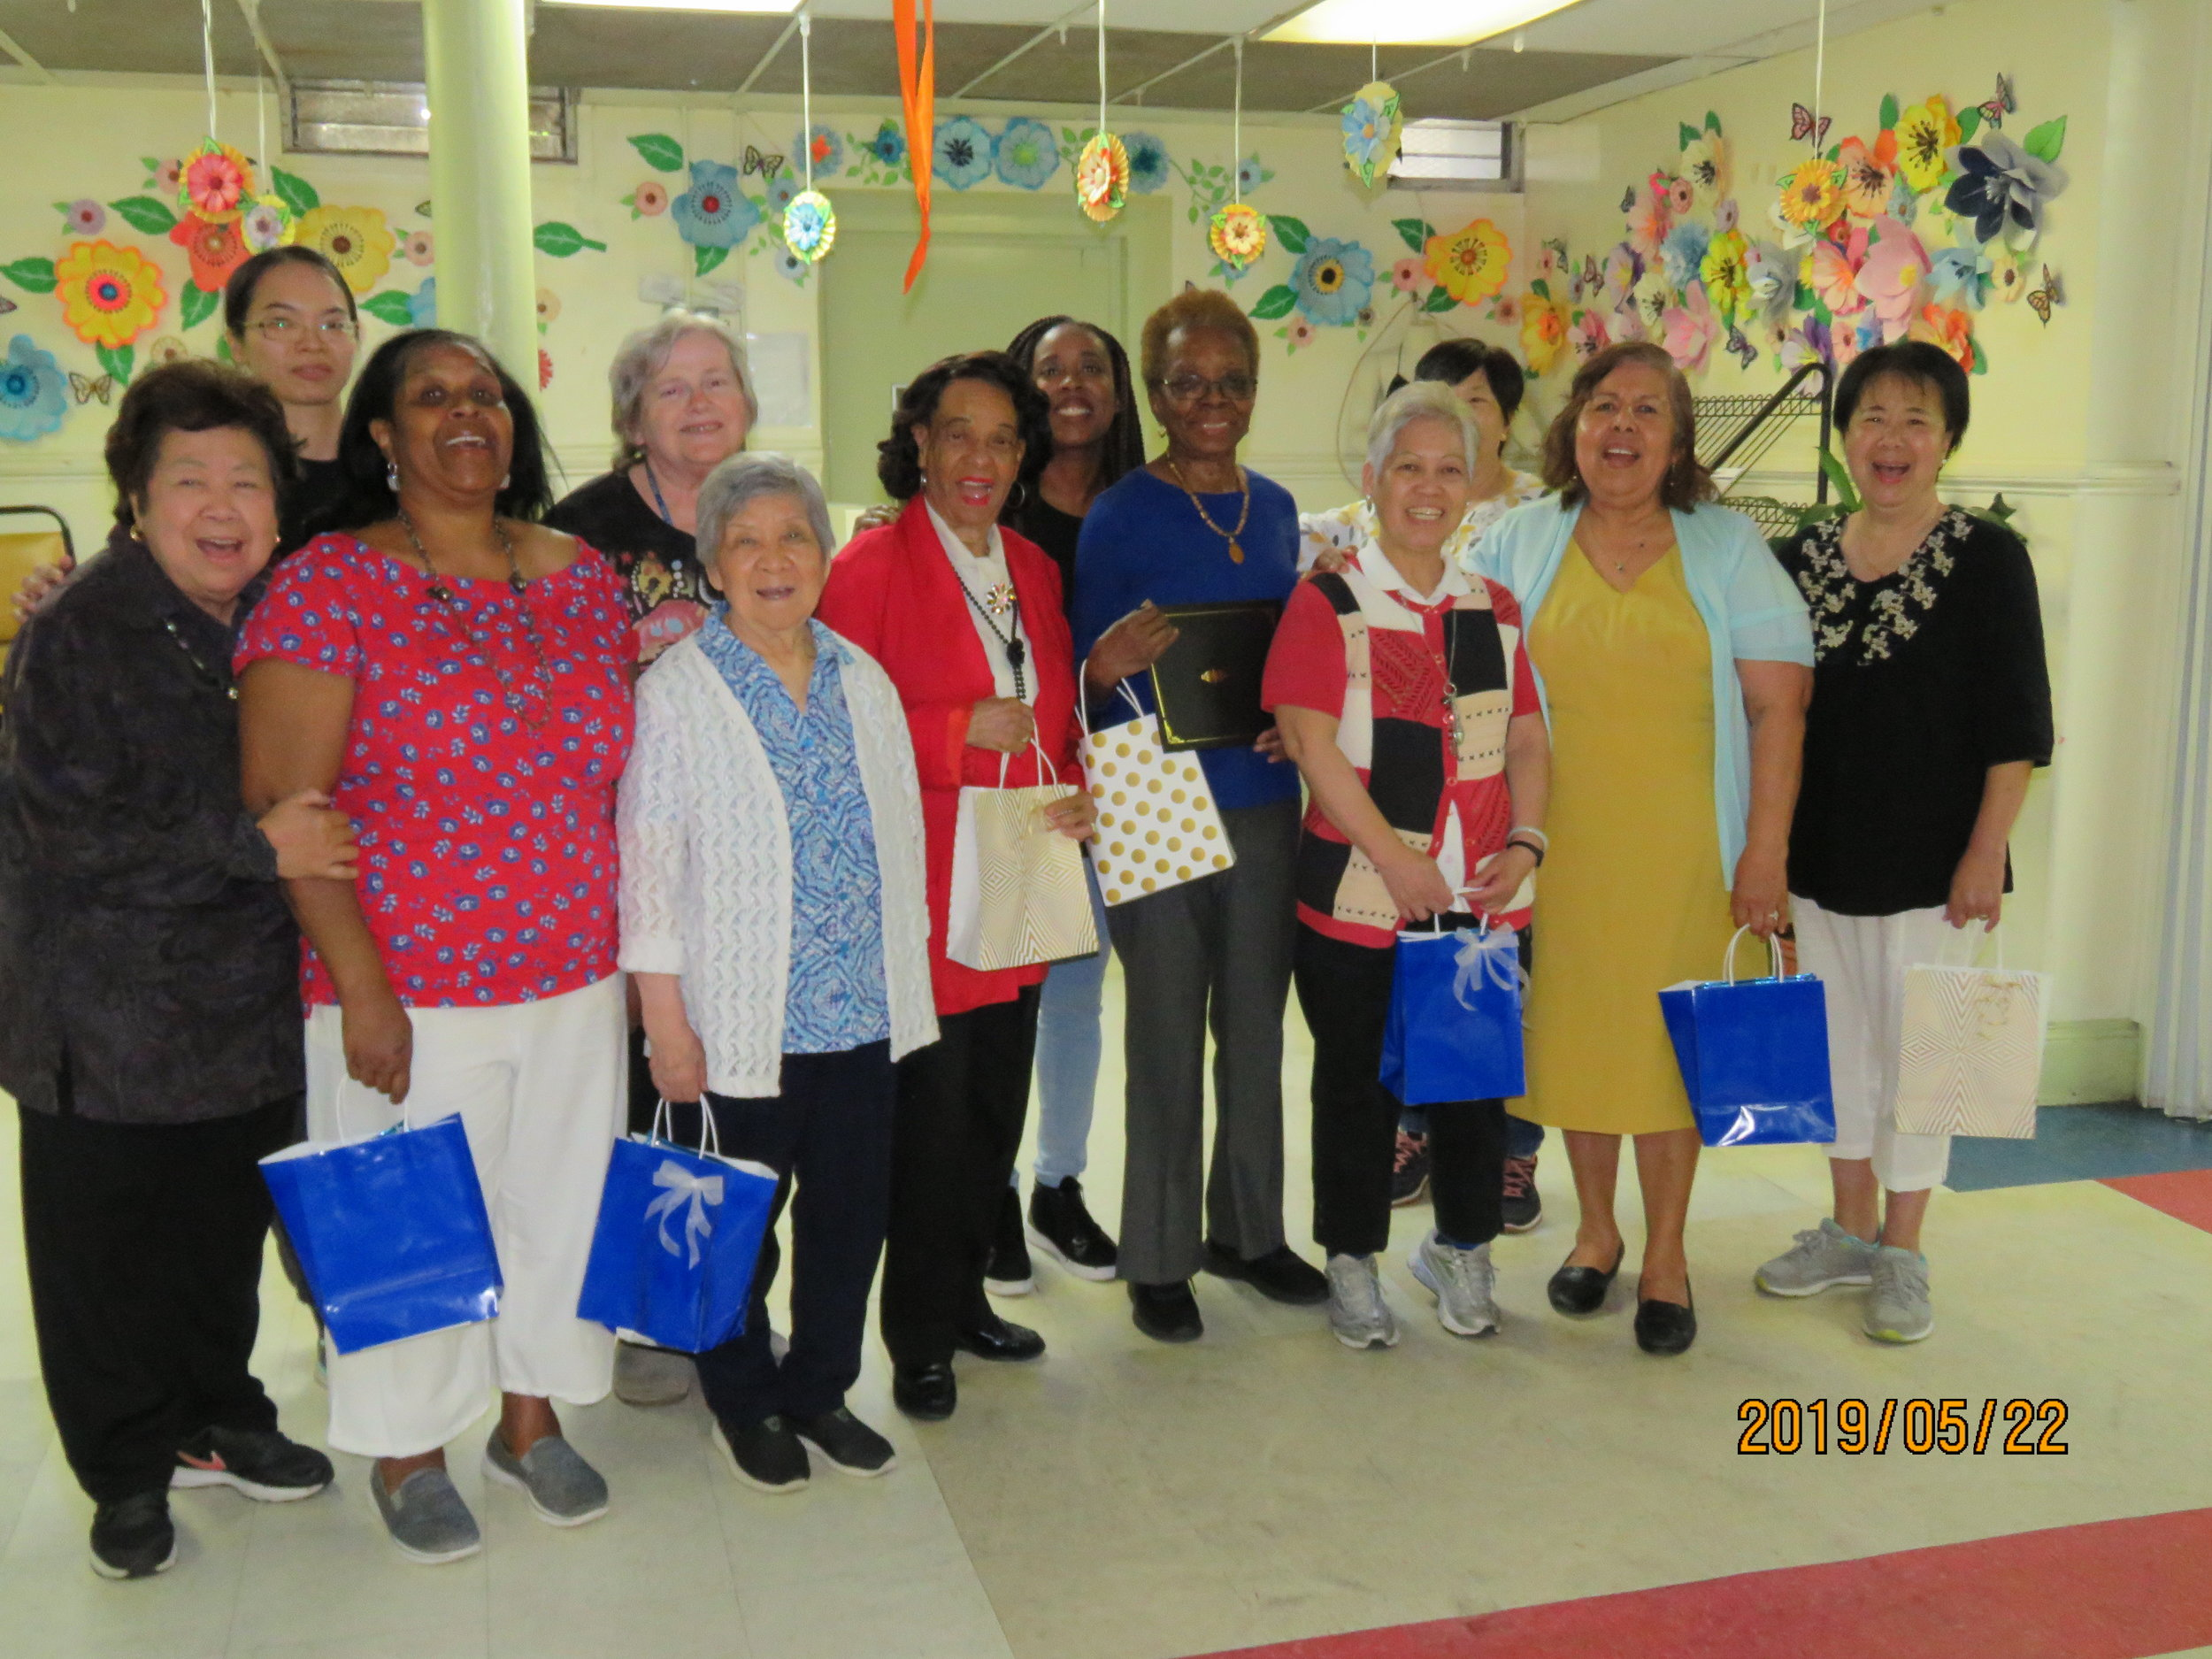 Seniors participating in the Cuban Song & Dance residency at the Dorchester Senior Citizens Center pose for a picture with instructor and SU-CASA artist, Danielle Brown after performing during the culminating event for the residency. SU-CASA is funded in FY19 by New York City Council, and we thank Councilmember Mathieu Eugene for his support.